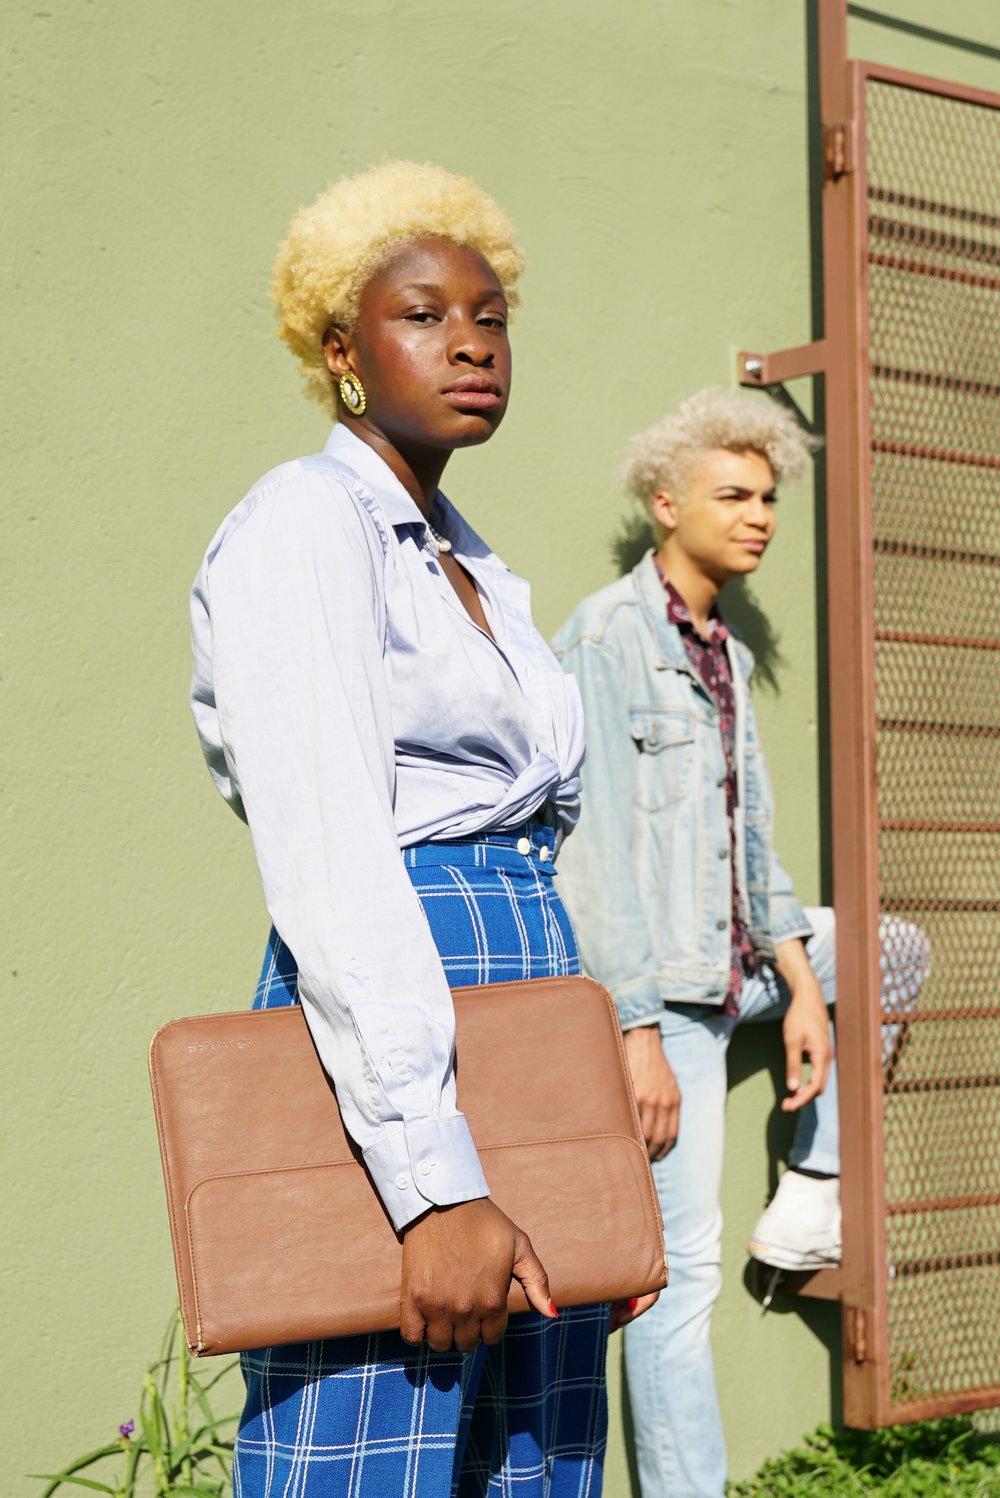 Amudo wears blue and Lewis wears denim on denim to show their personal styles choices.